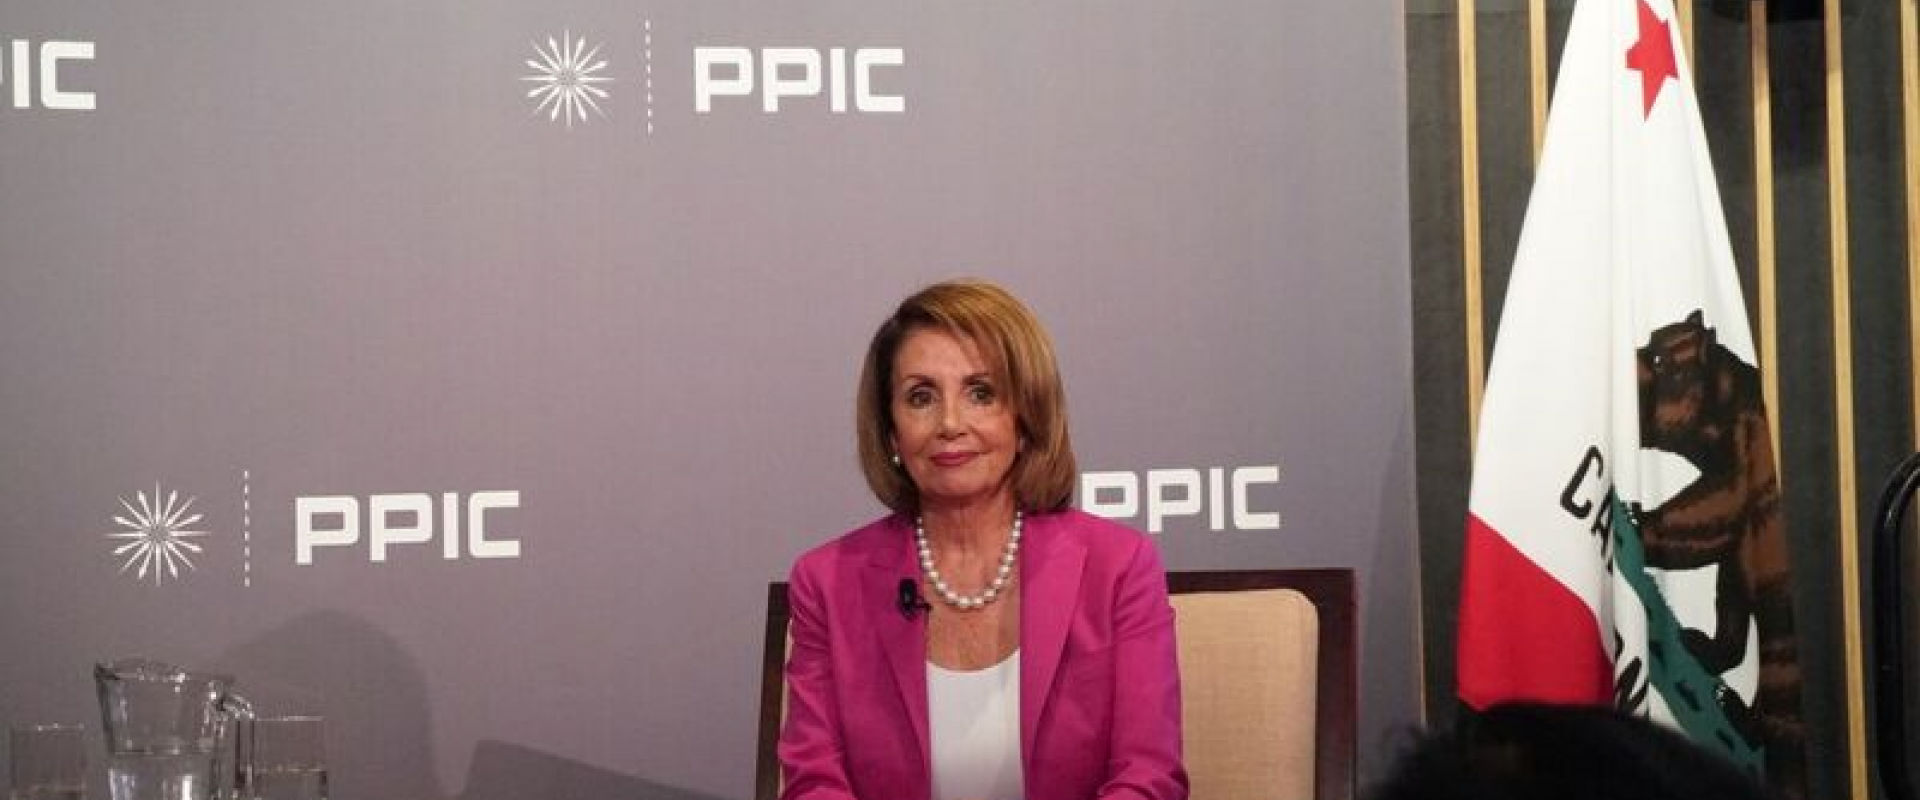 Congresswoman Pelosi joins Public Policy Institute of California (PPIC) President and CEO Mark Baldassare for a for a wide-ranging discussion on navigating the state-federal relationship, affordable health care, protecting the environment, women's rights,